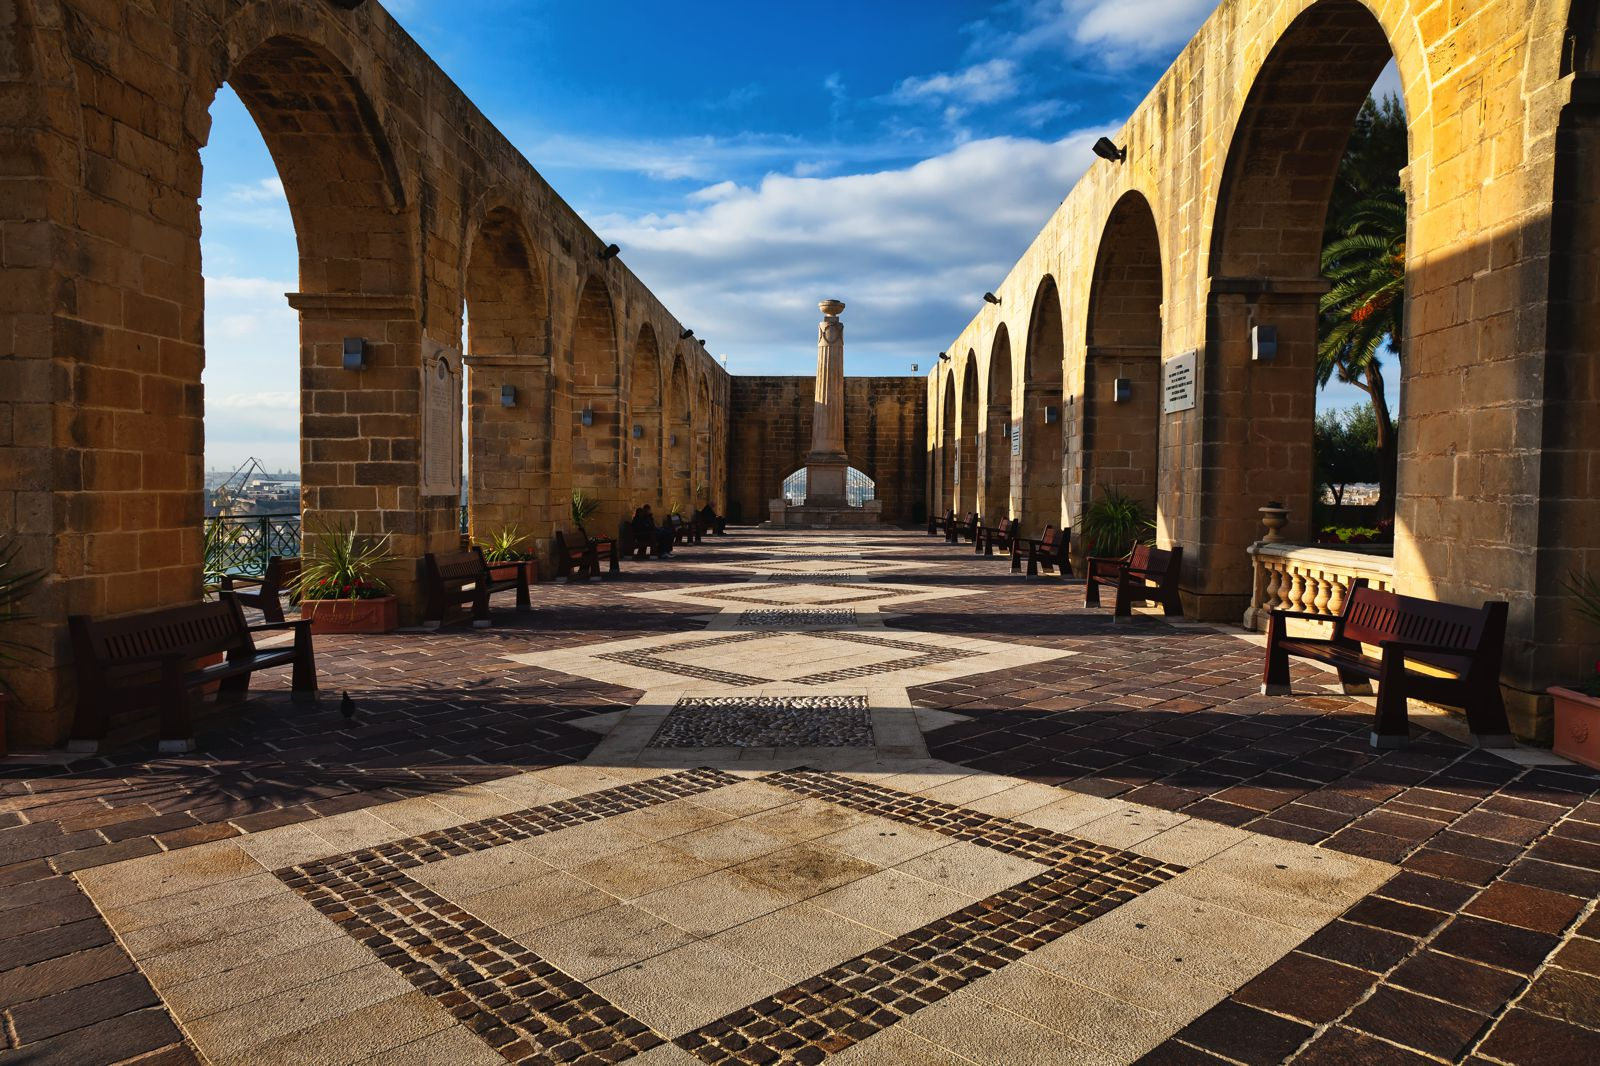 18 Incredible Things You Have To See And Do In Malta And Gozo (17)